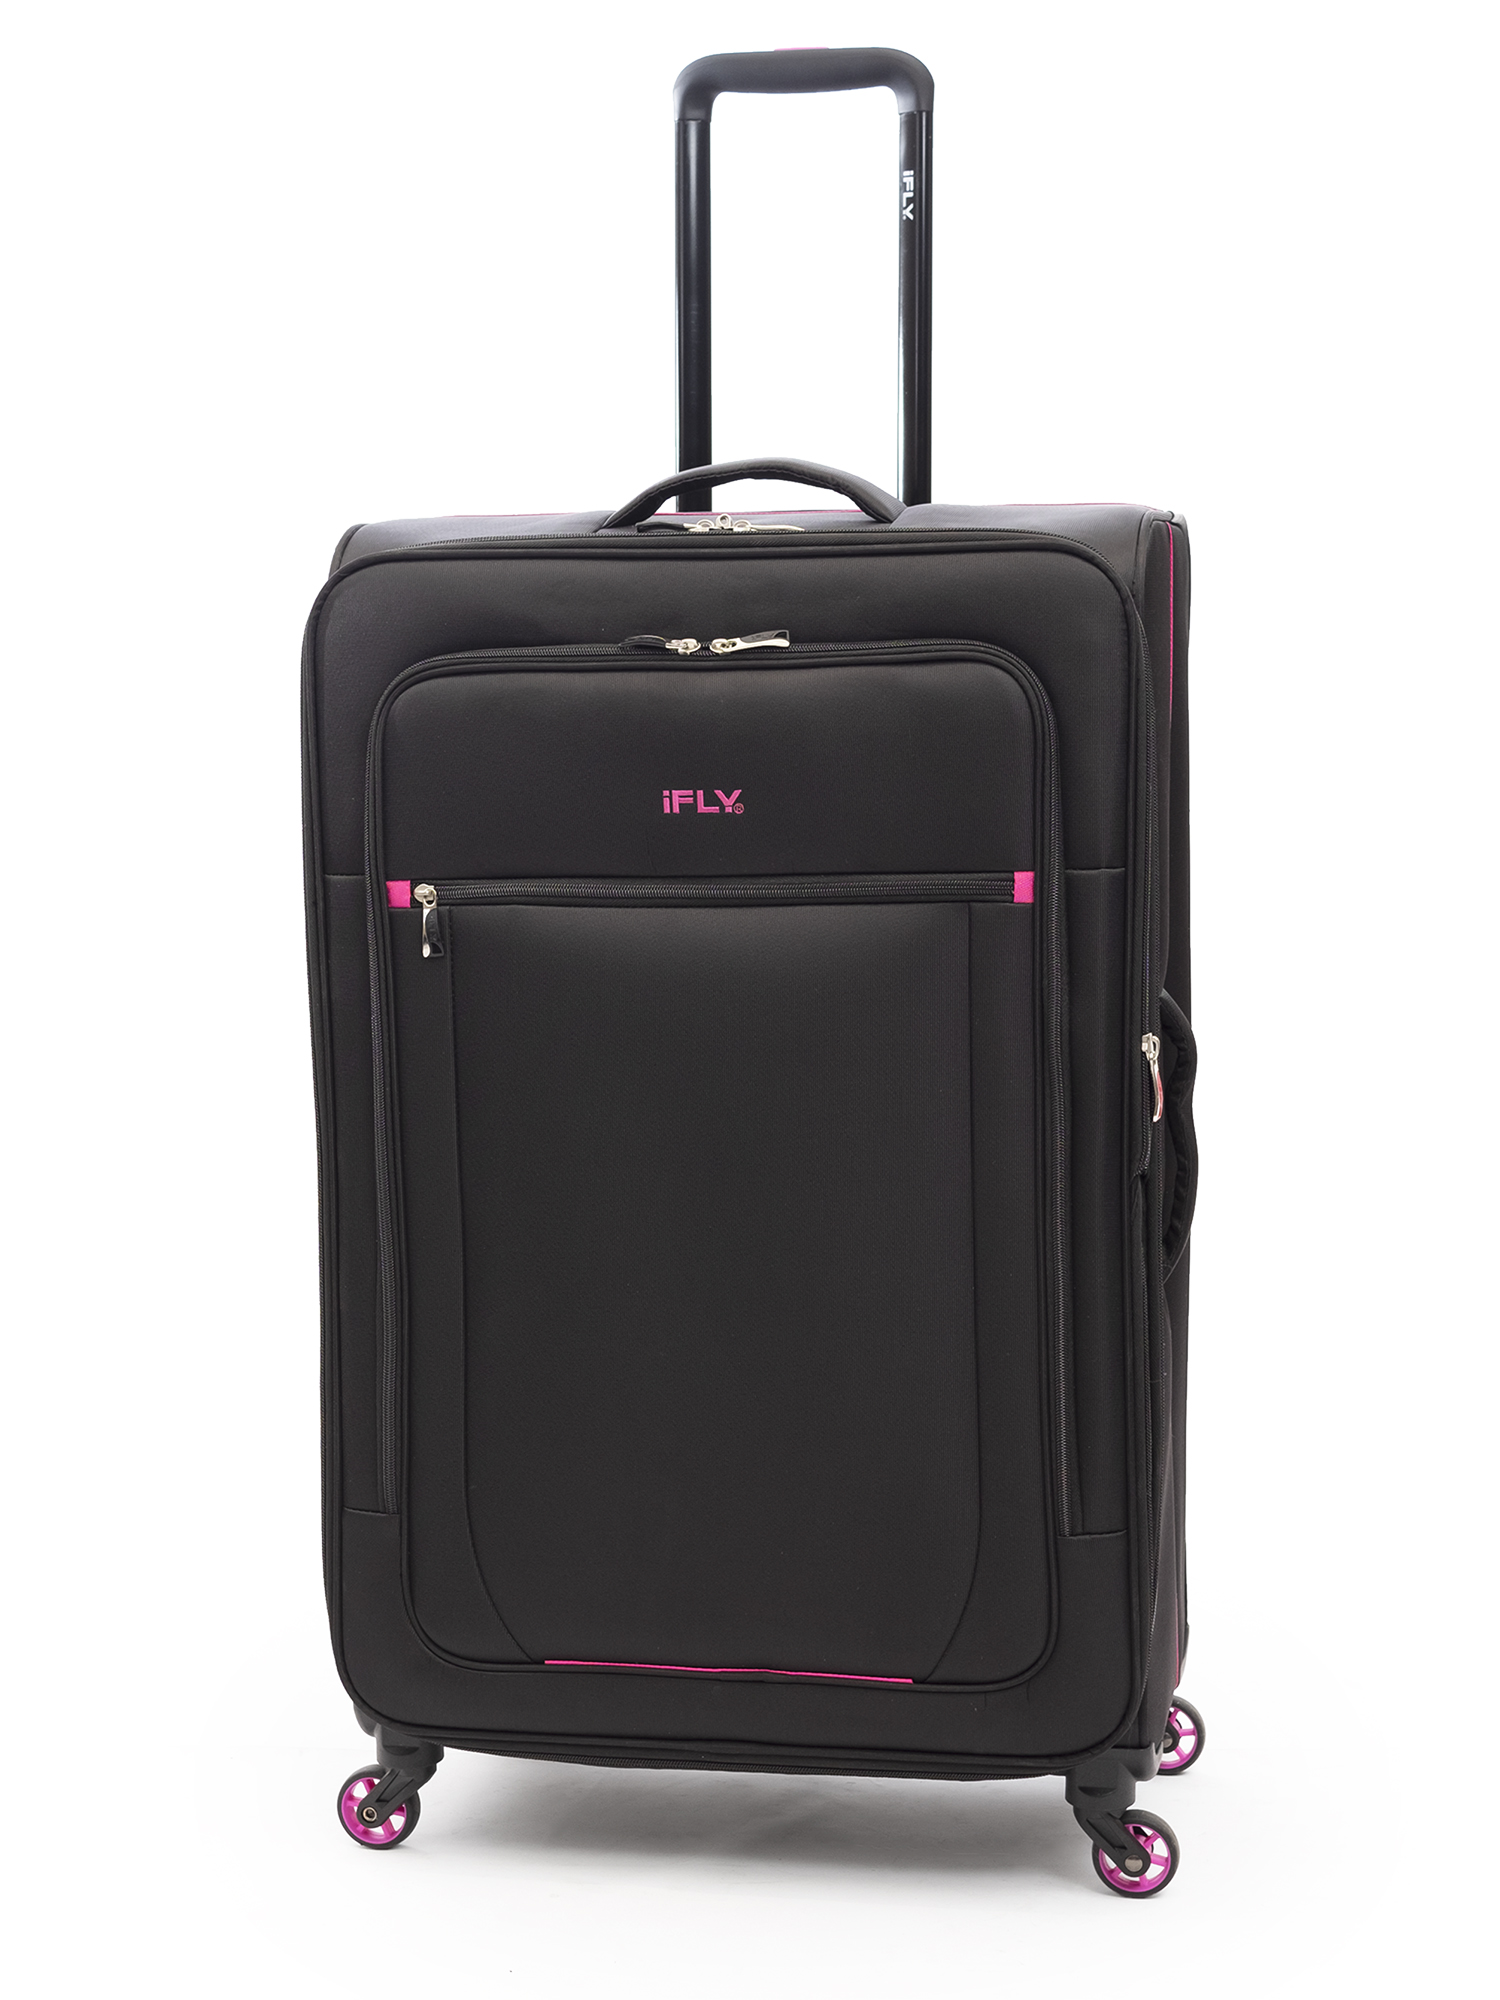 "iFLY Soft Sided Luggage Glamour 28"", Black/Pink"